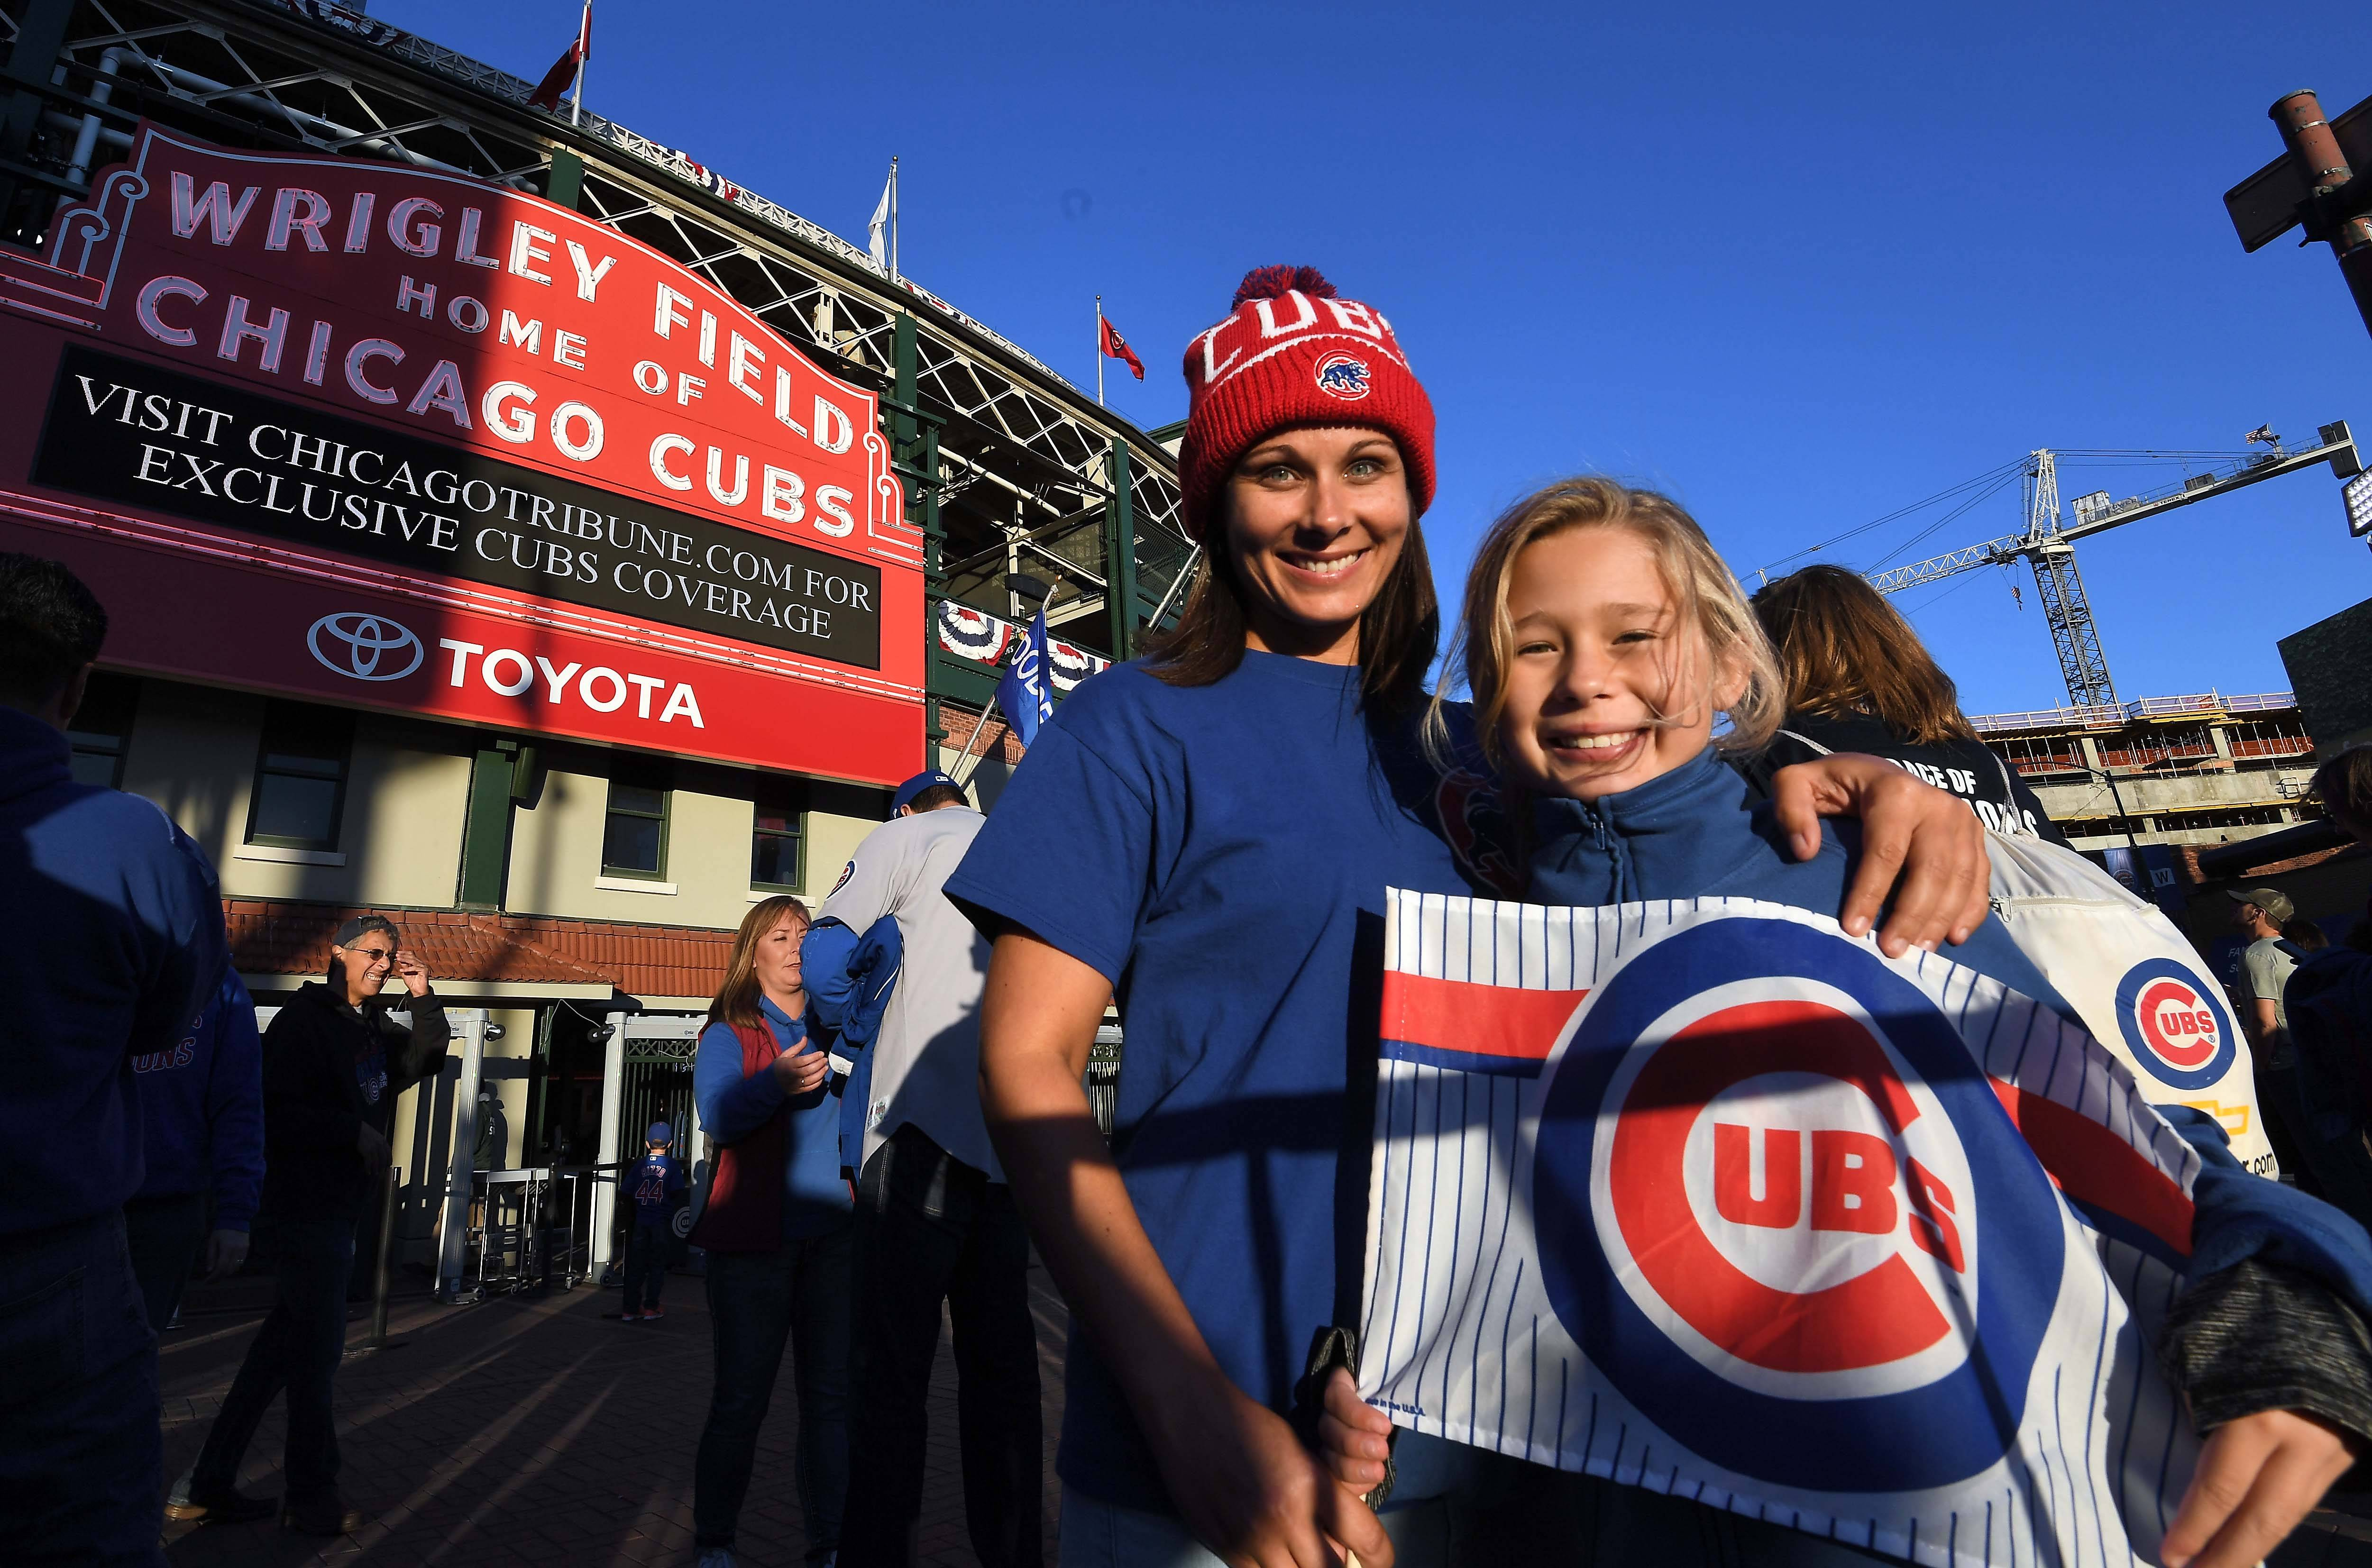 An odyssey that started at 4:30 a.m. Tuesday in their home in Kuttawa, Kentucky, required trips by car, Amtrak and L train to drop Crissy Johnson, and her daughter Trinity Taylor, 8, at Wrigley Field so they could root on the Chicago Cubs. They expect to catch some sleep on today's 6:15 a.m. train back to Carbondale.